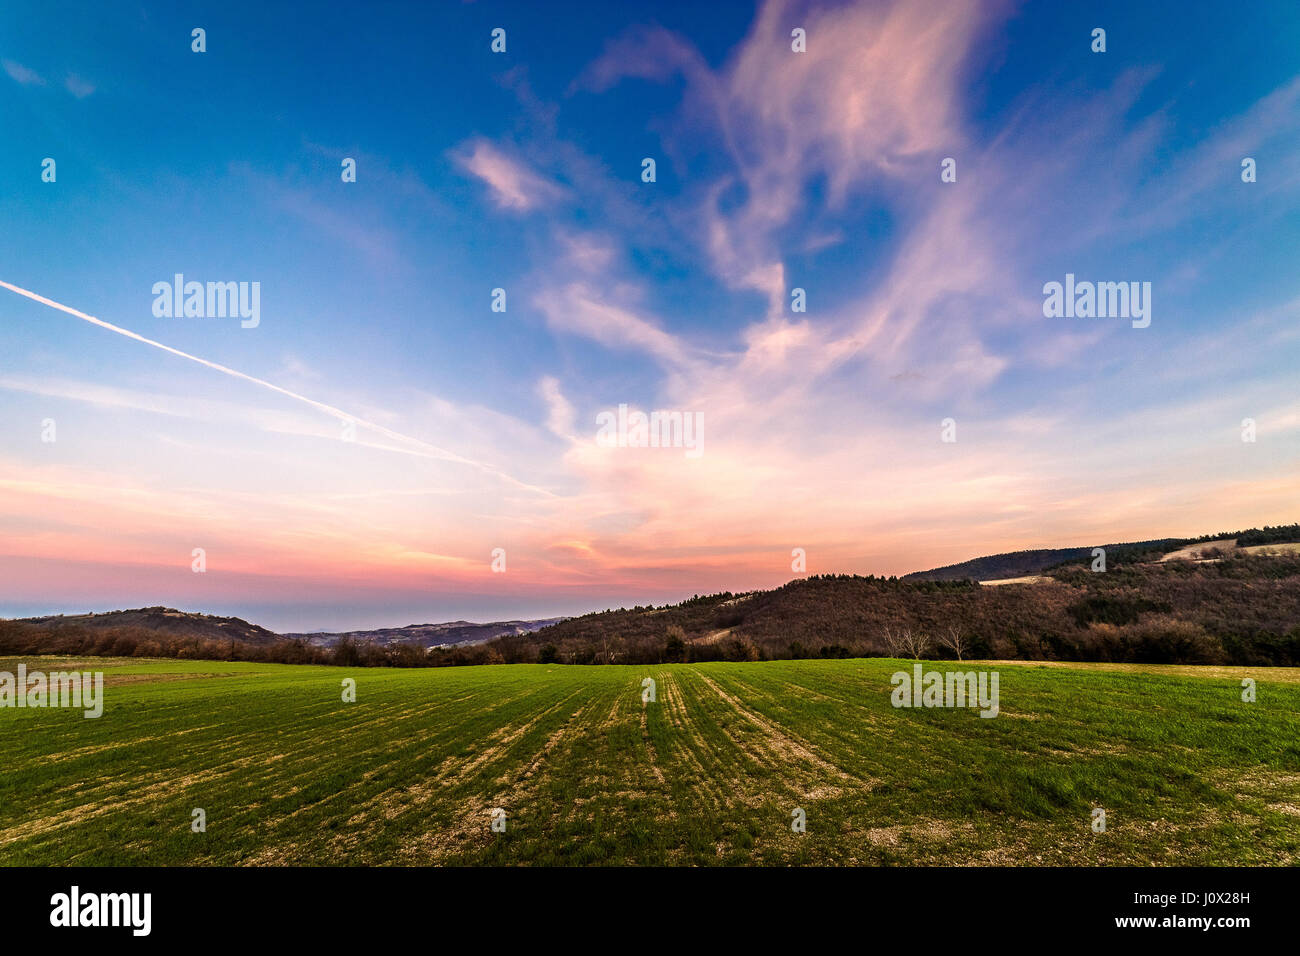 Rural landscape at sunset, Tramonto, Italy - Stock Image